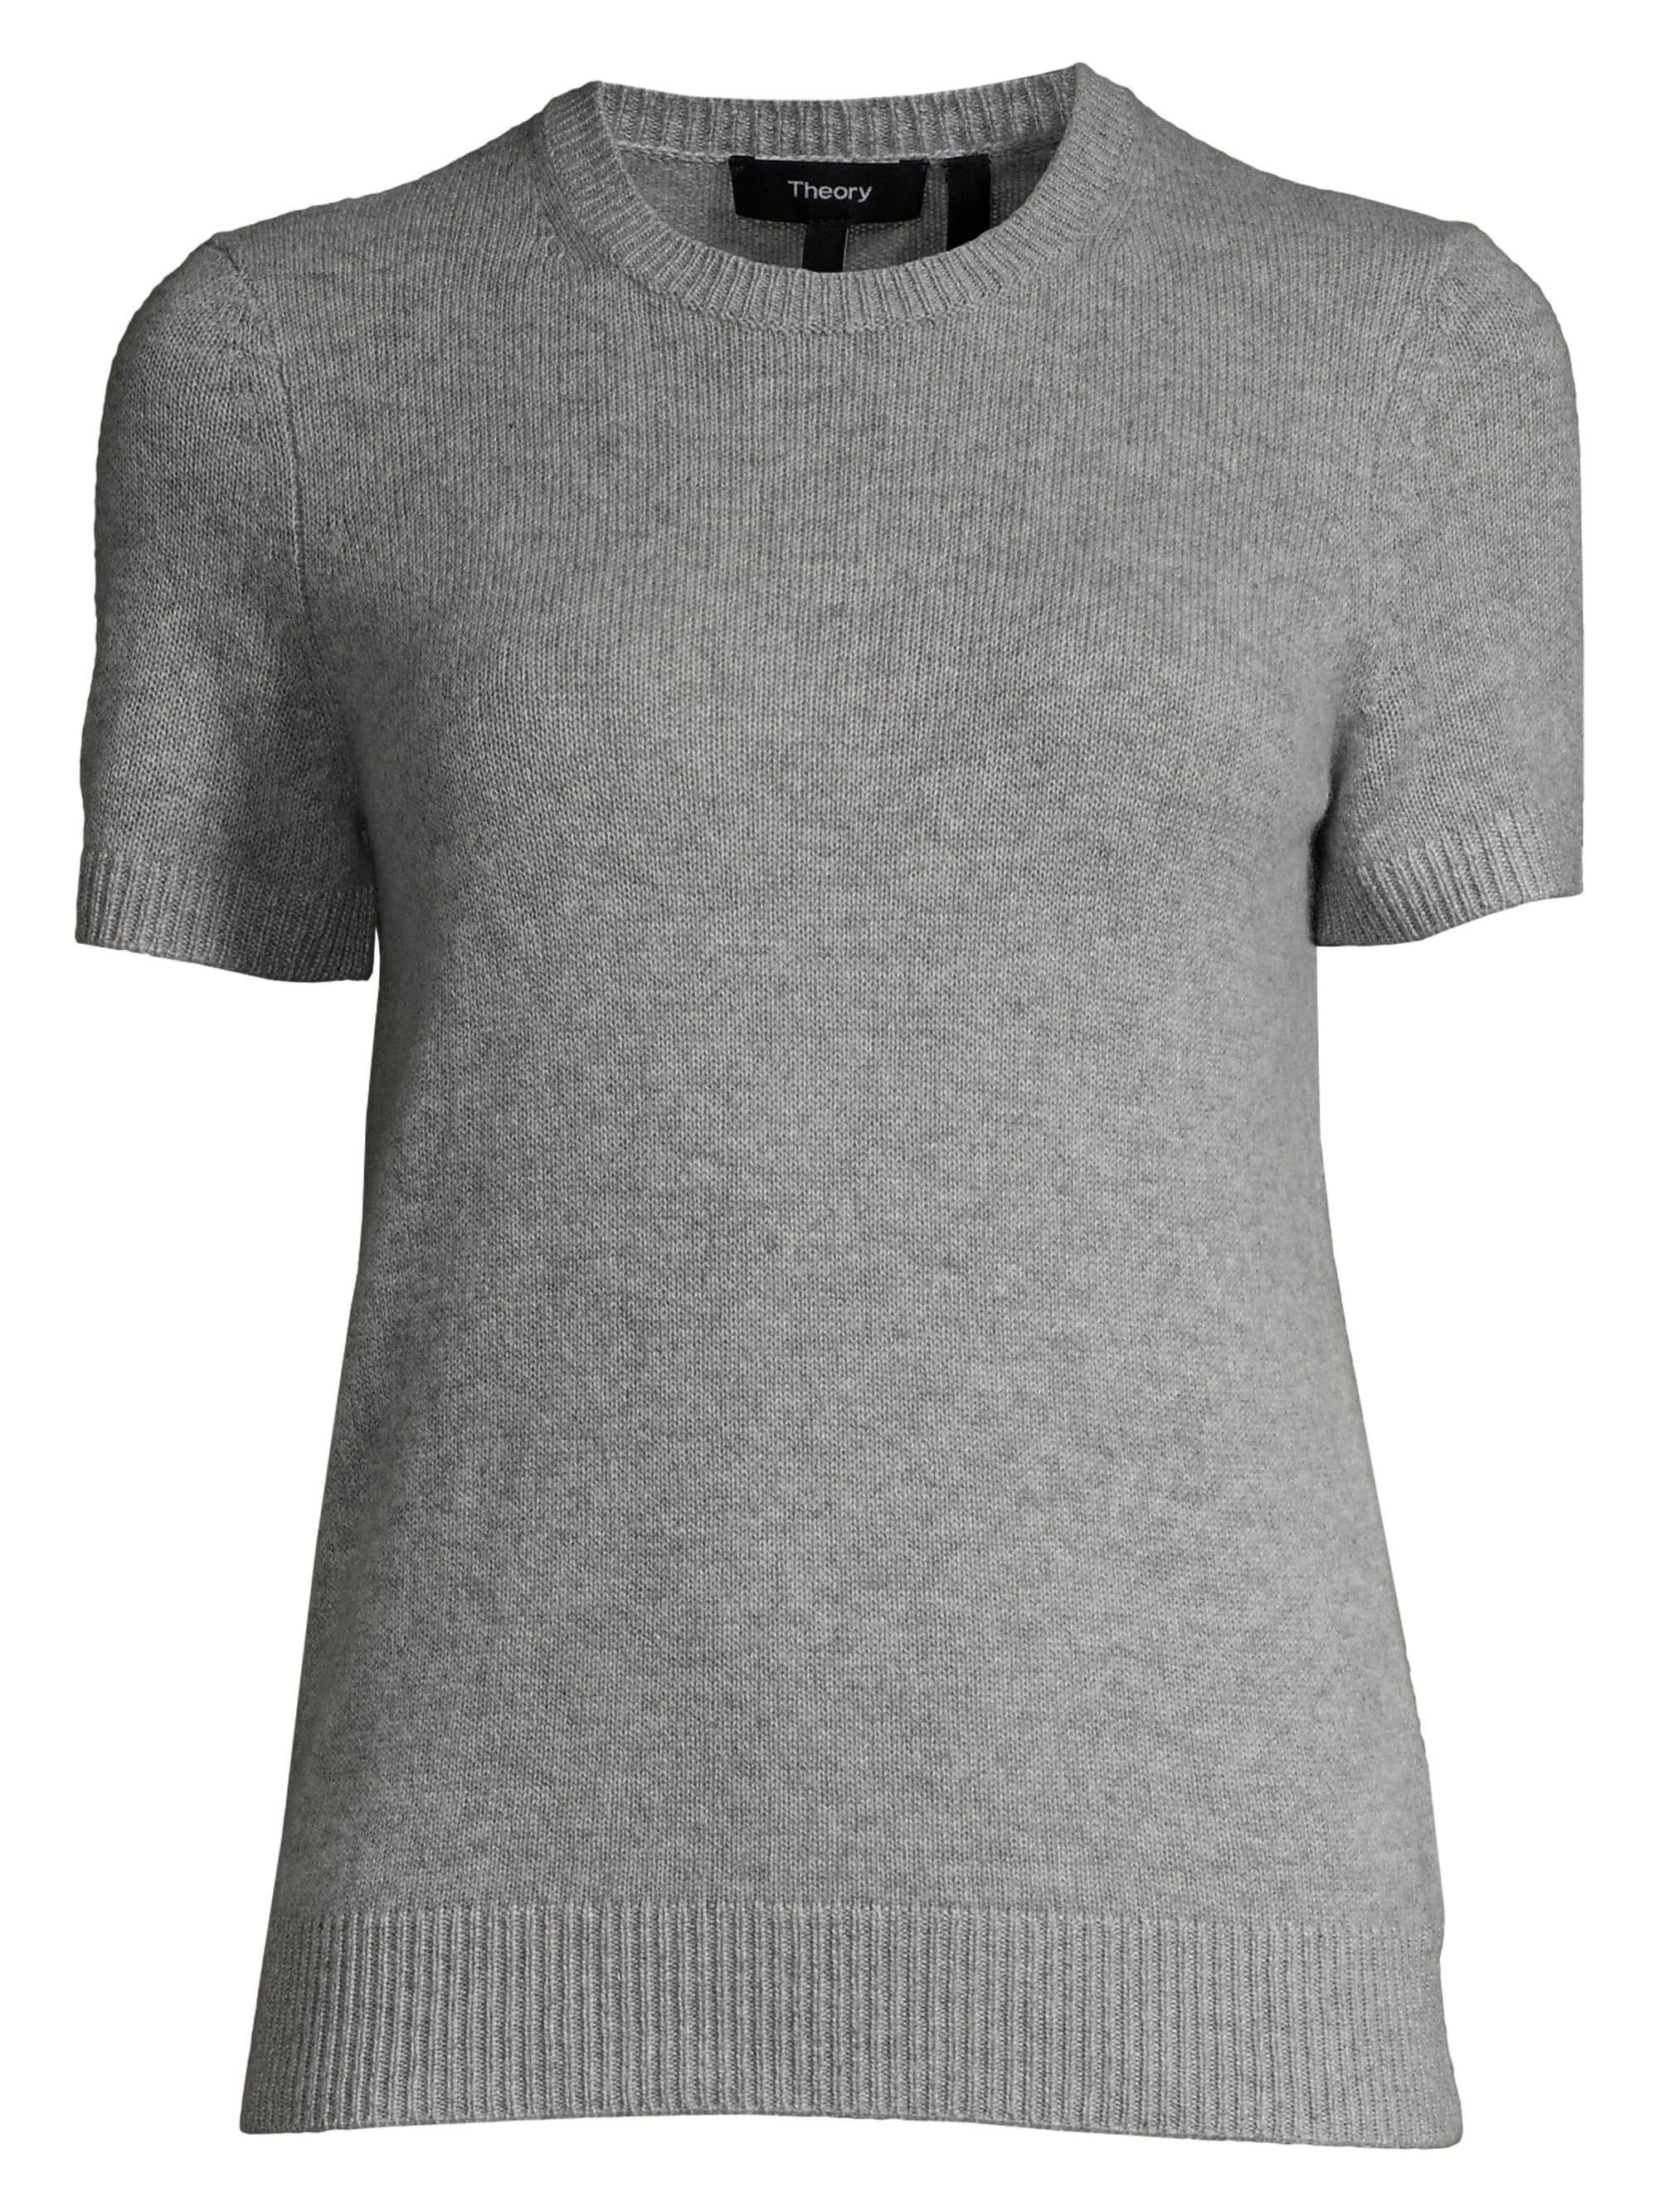 11906cf1541 Lyst - Theory Women's Basic Cashmere Tee - Opal Green - Size Large ...